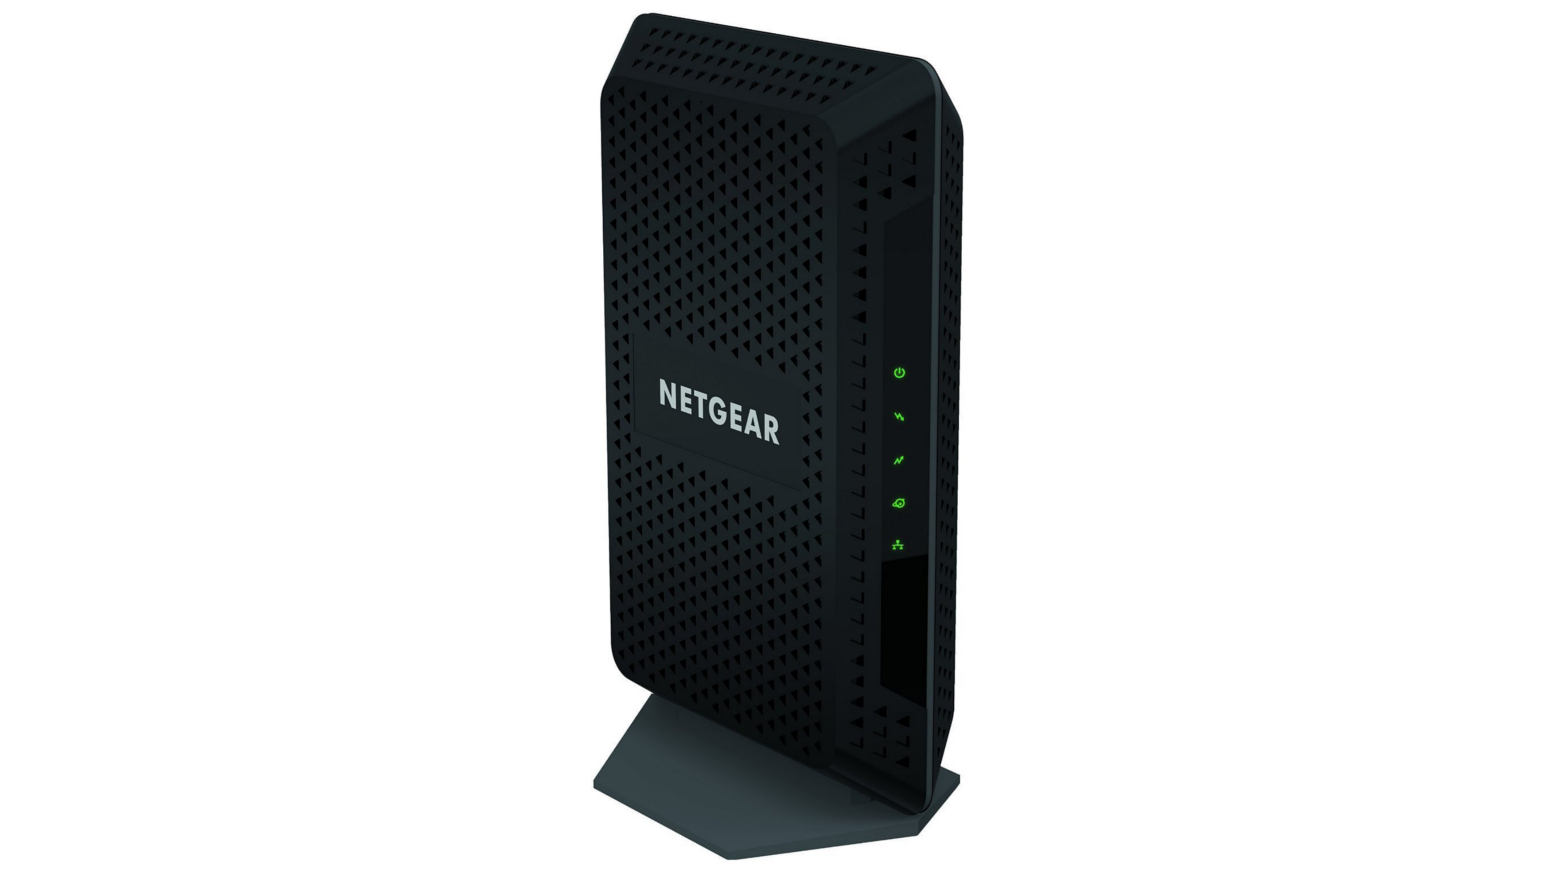 best cable modem for comcast, cable modem, comcast modem, comcast cable modem, best cable modem, comcast compatible modems, modem for comcast, best modem for comcast, cable modem comcast, xfinity modem, comcast approved modem, netgear modem